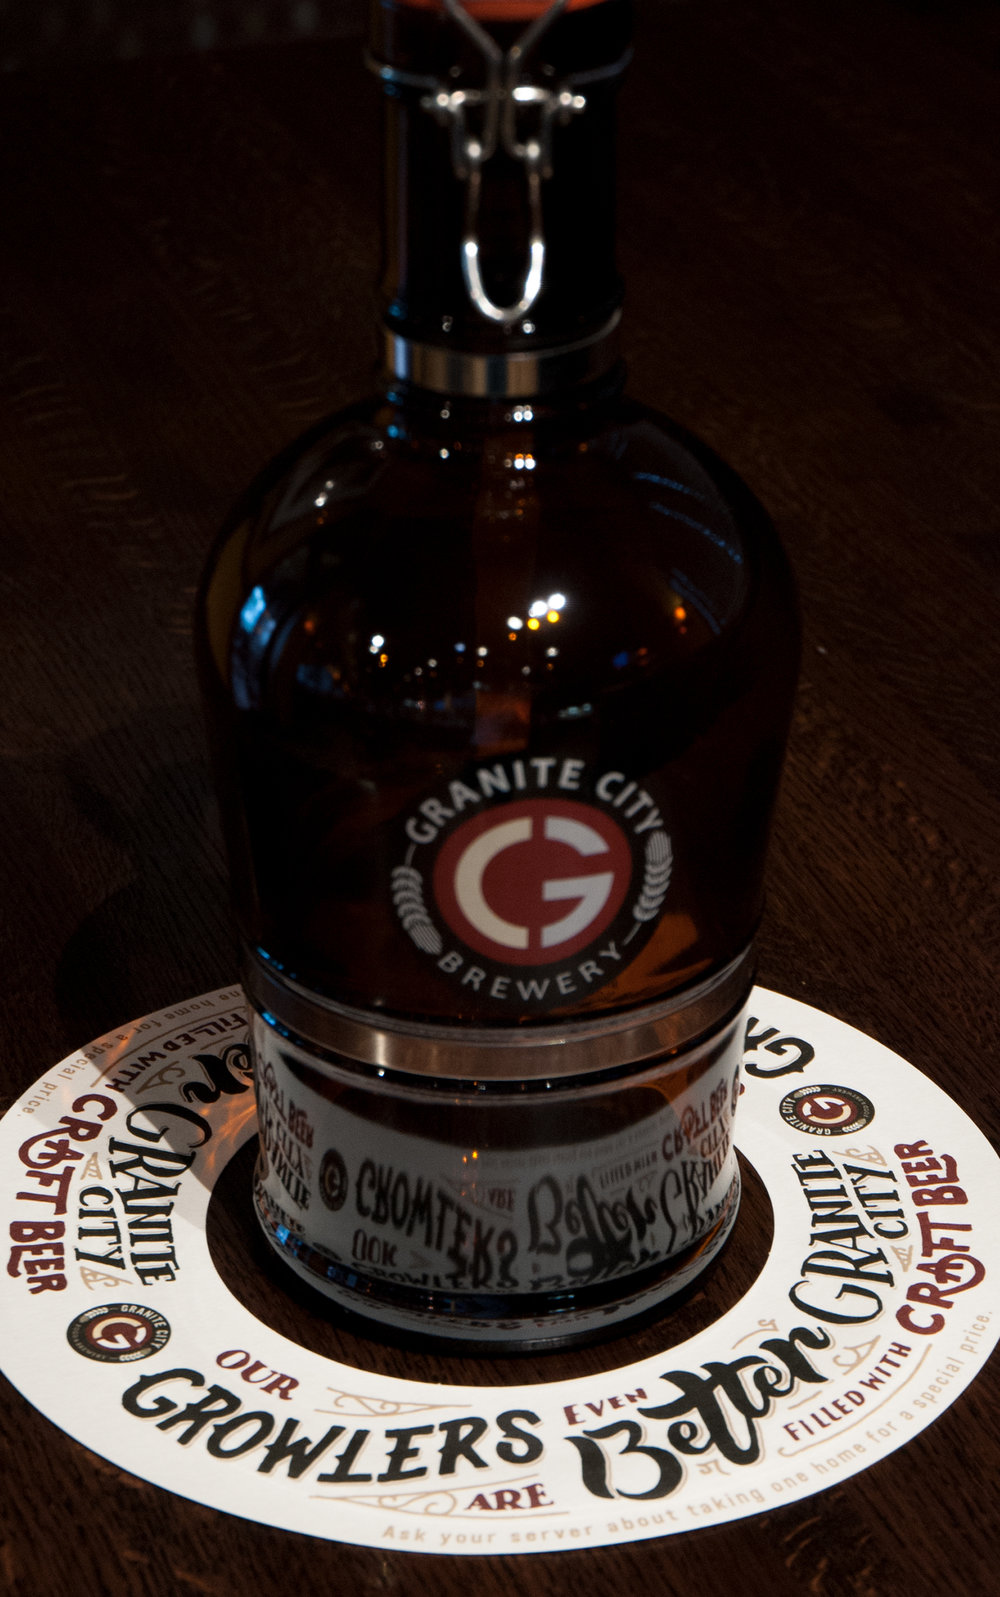 VS.Website.GraniteCity.Growler.01a.jpg